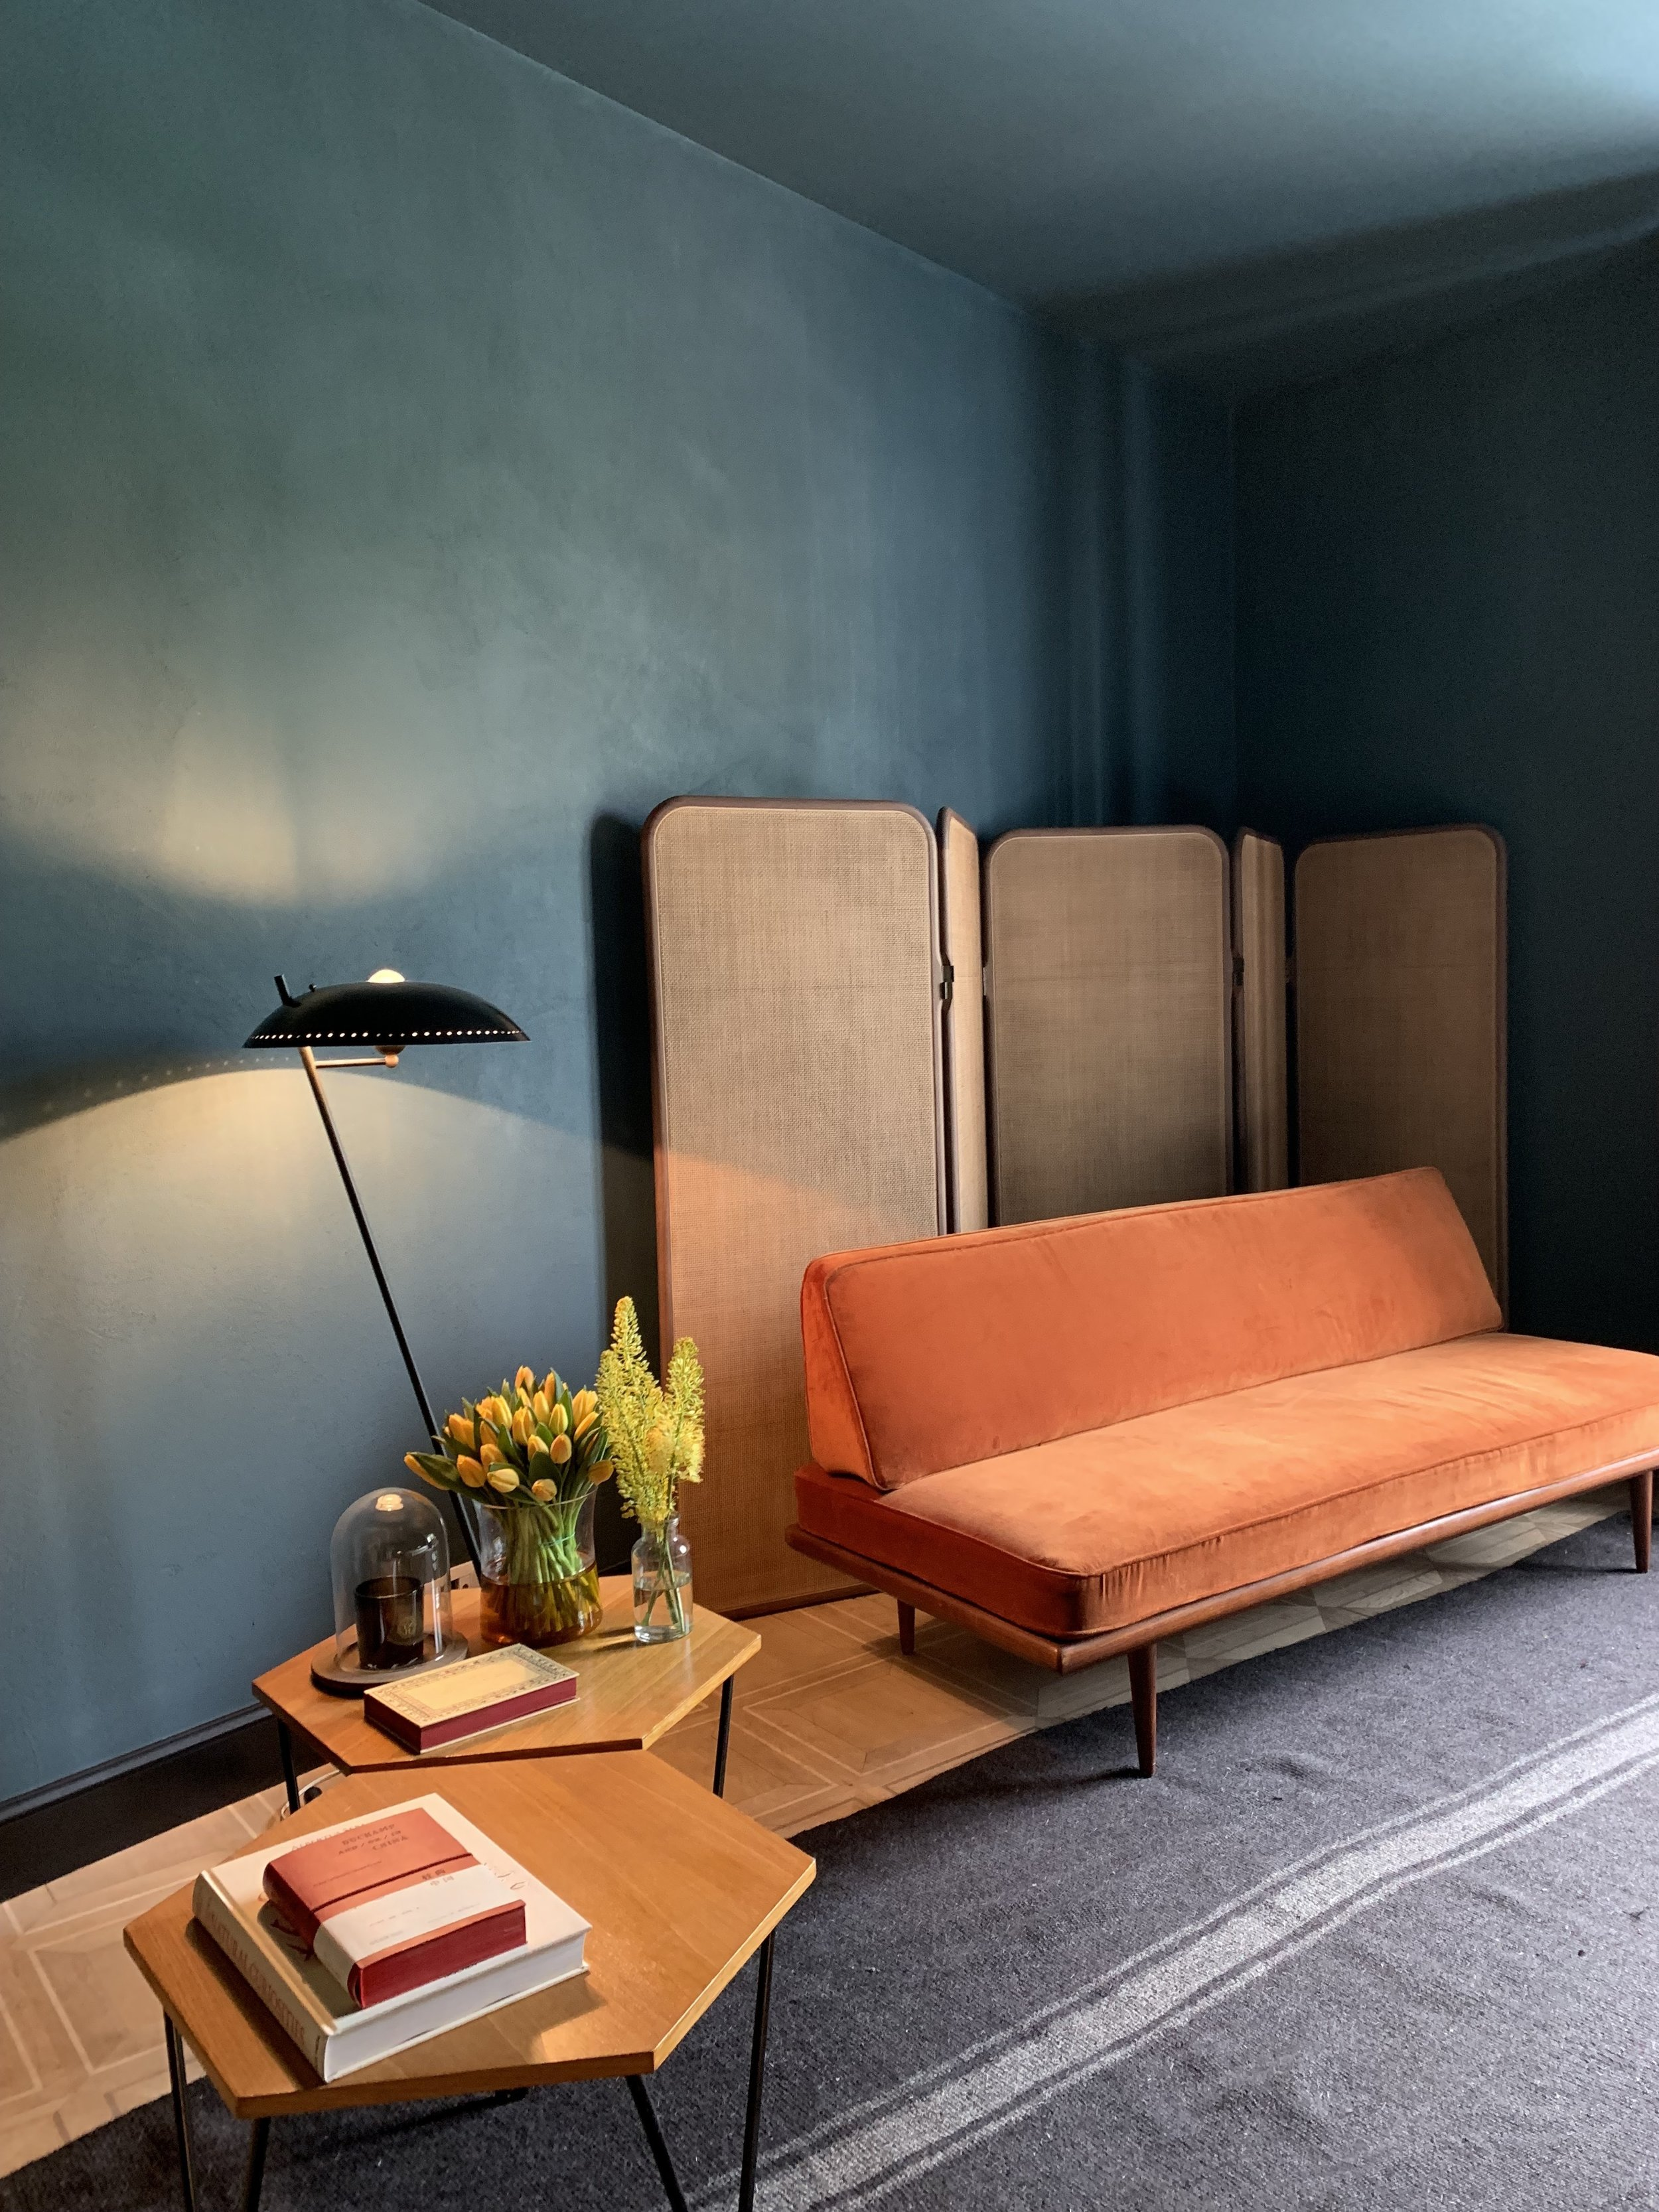 Sister Hotel by David Lopez Quincoces and Fanny Bauer Grung